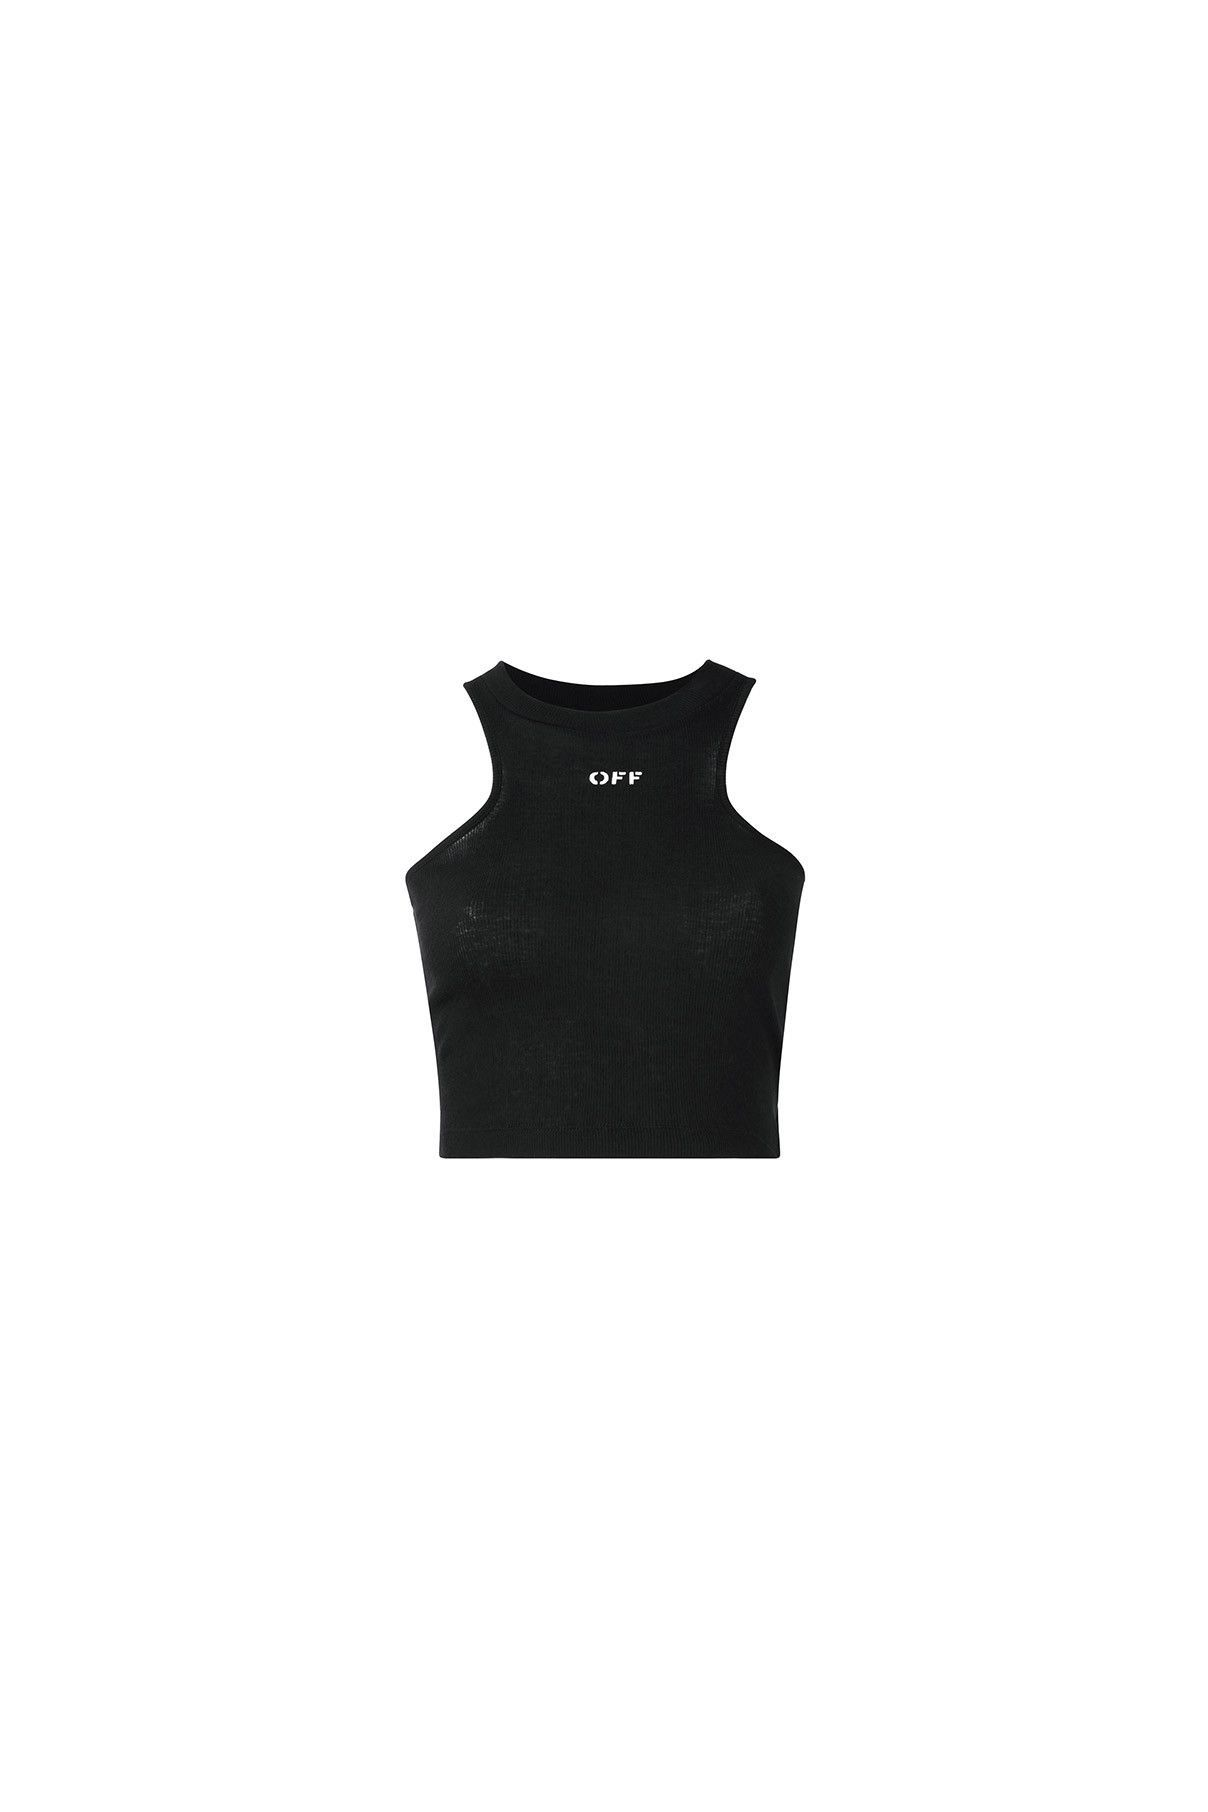 Off-White / 01 clothing / 04 knitwear / 02 tank top} Wife Beater ...